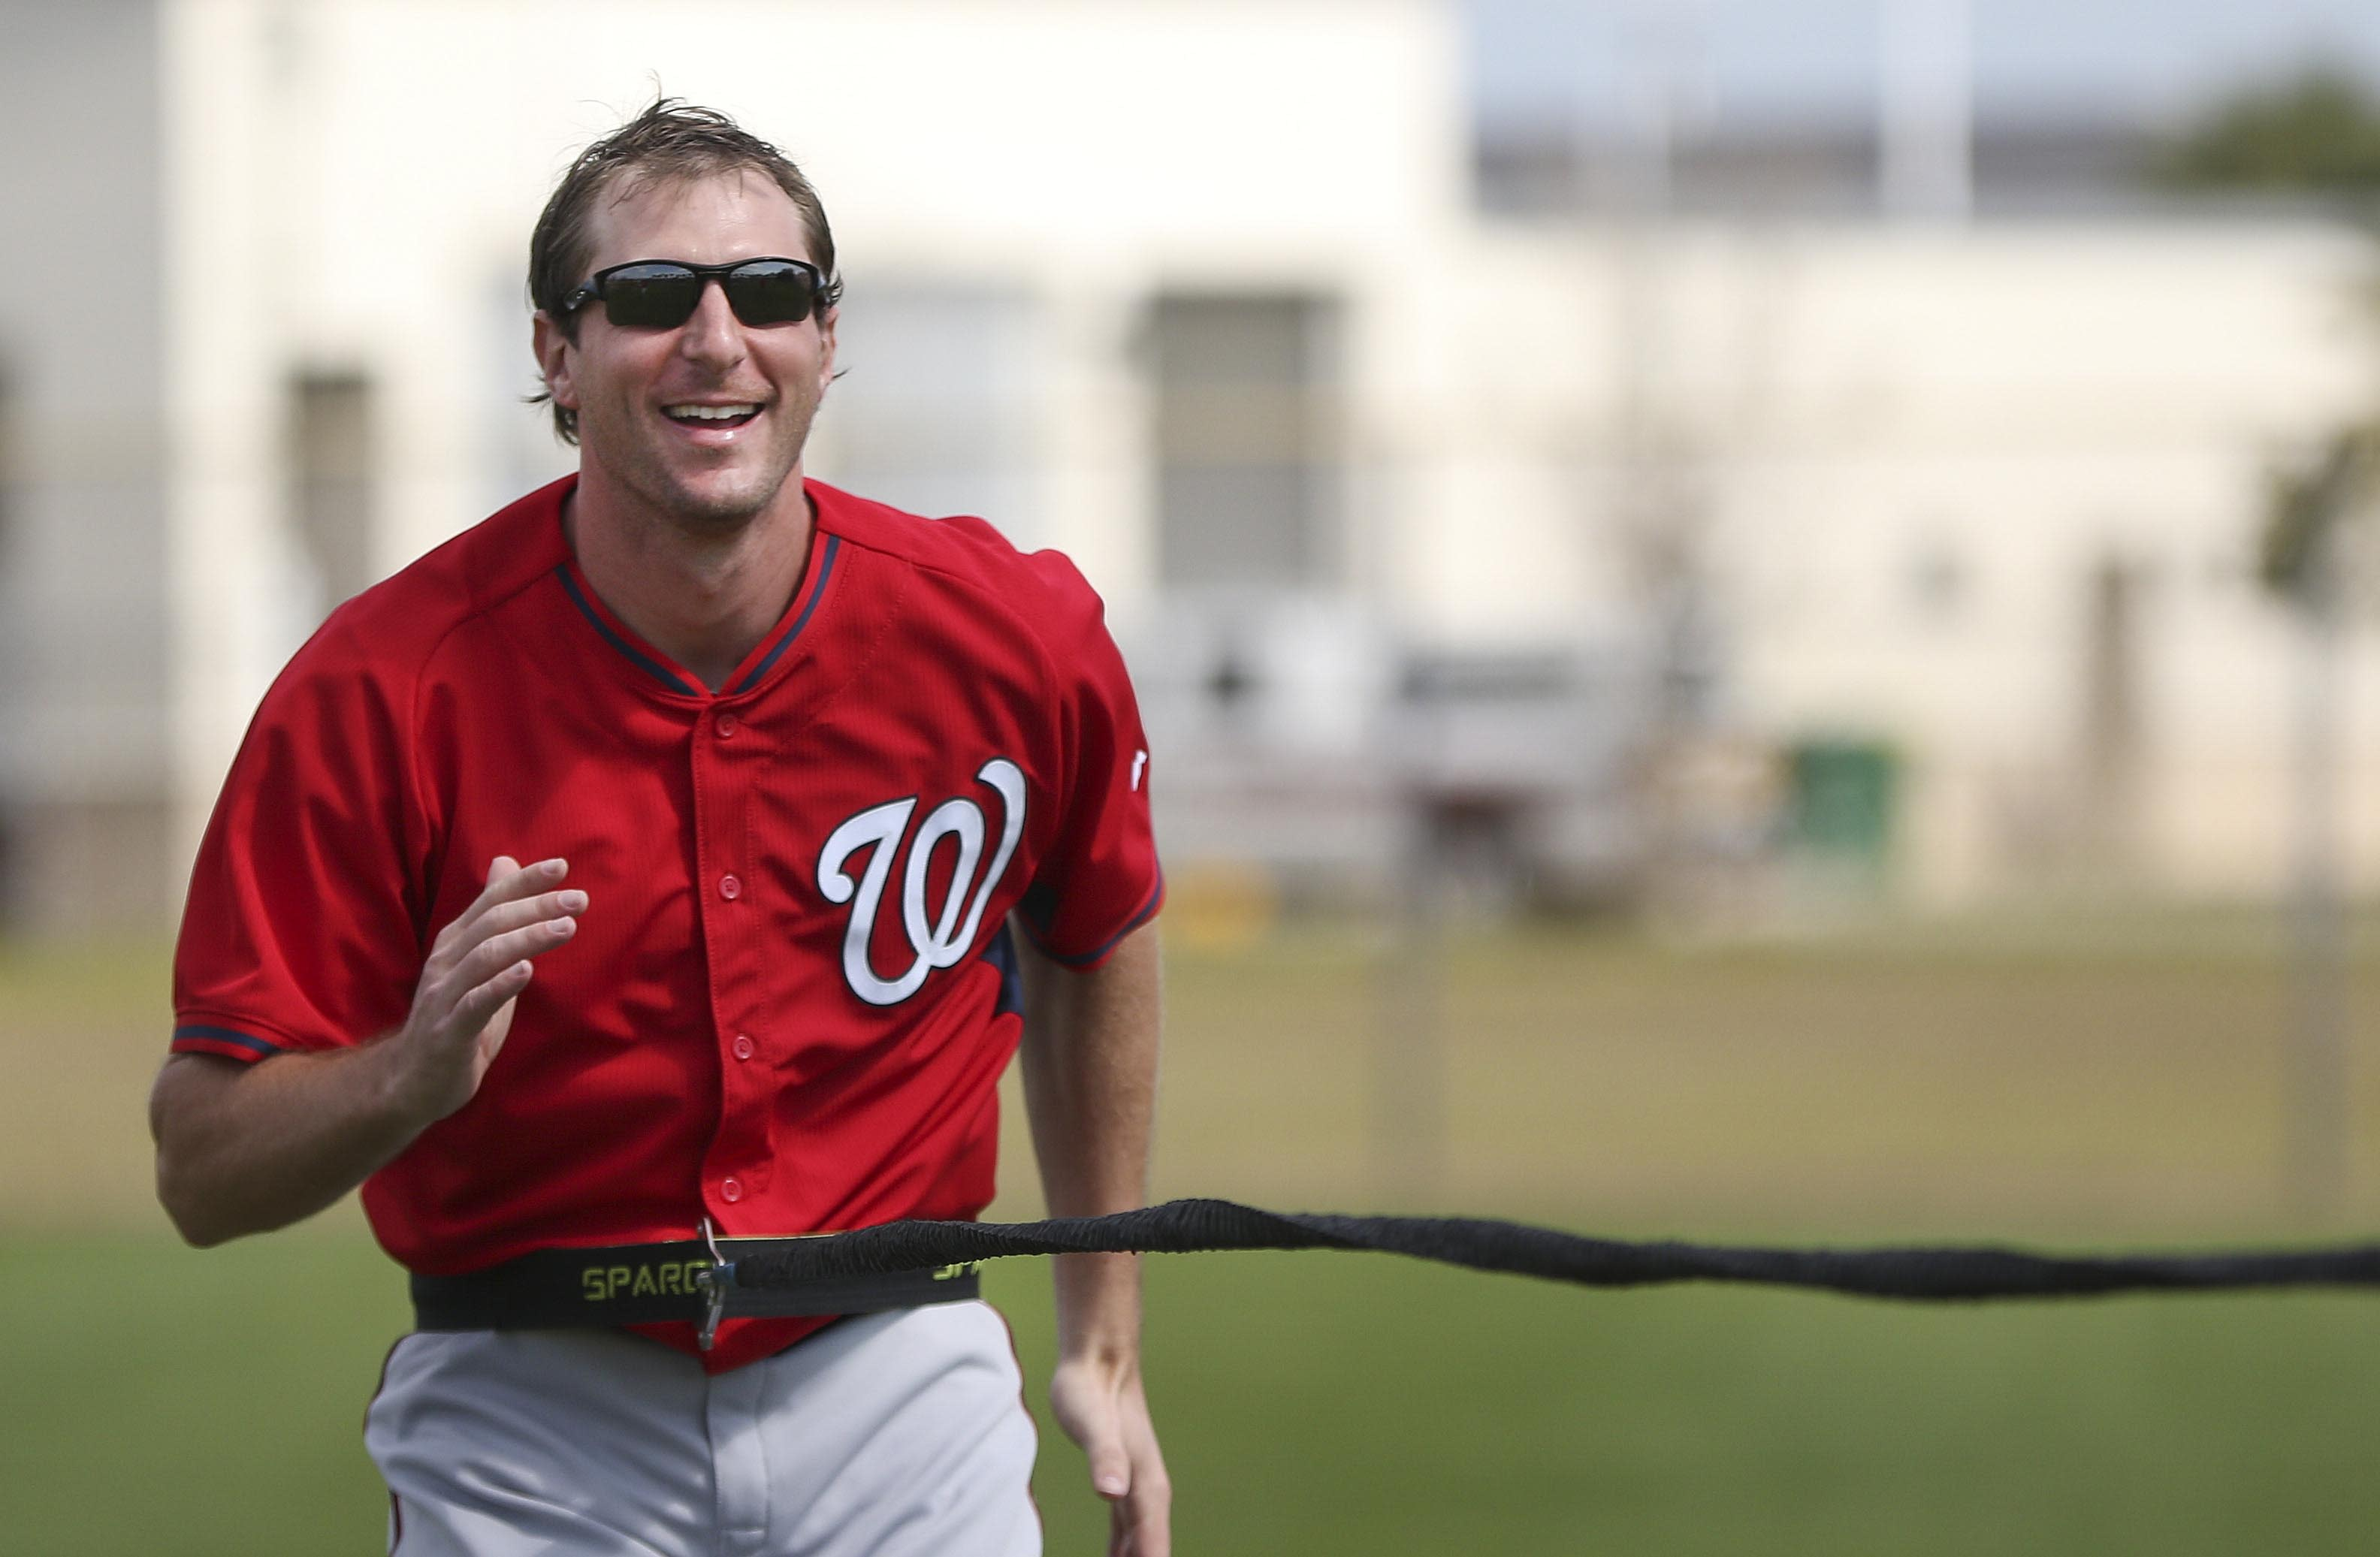 Max Scherzer reveals details of injury insurance policy